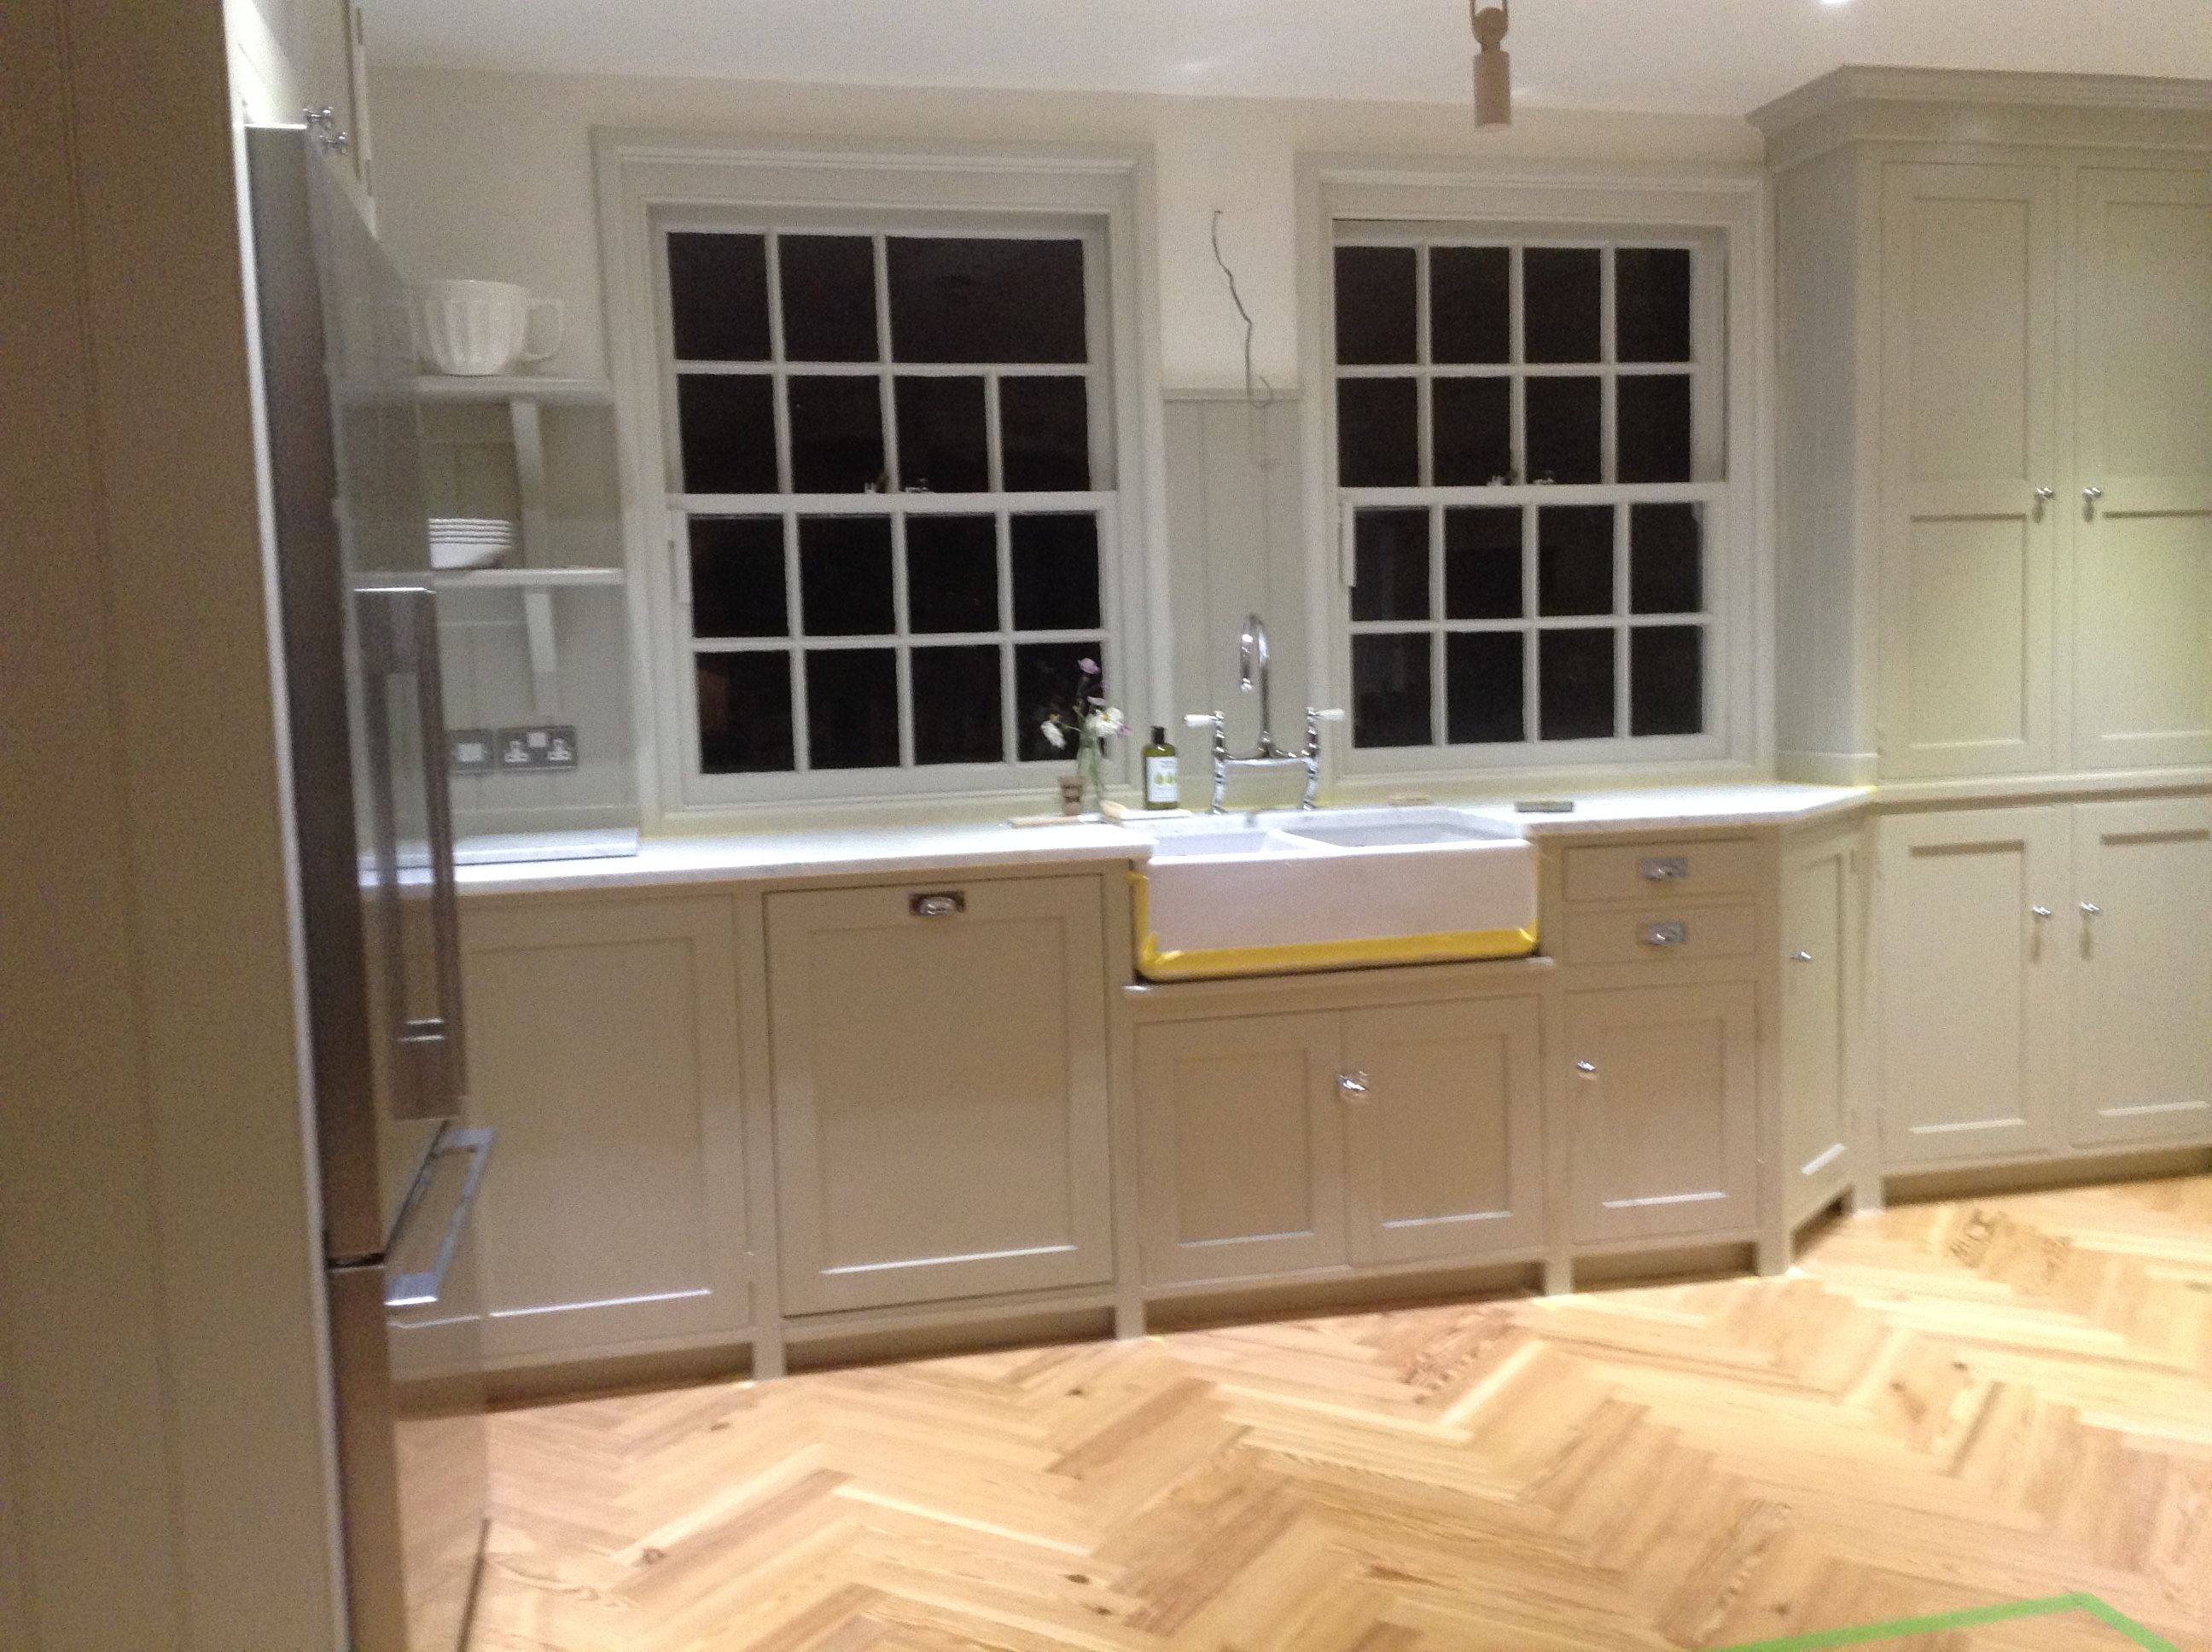 Best Farrow And Ball Drop Cloth On The Cabinets Simple 400 x 300